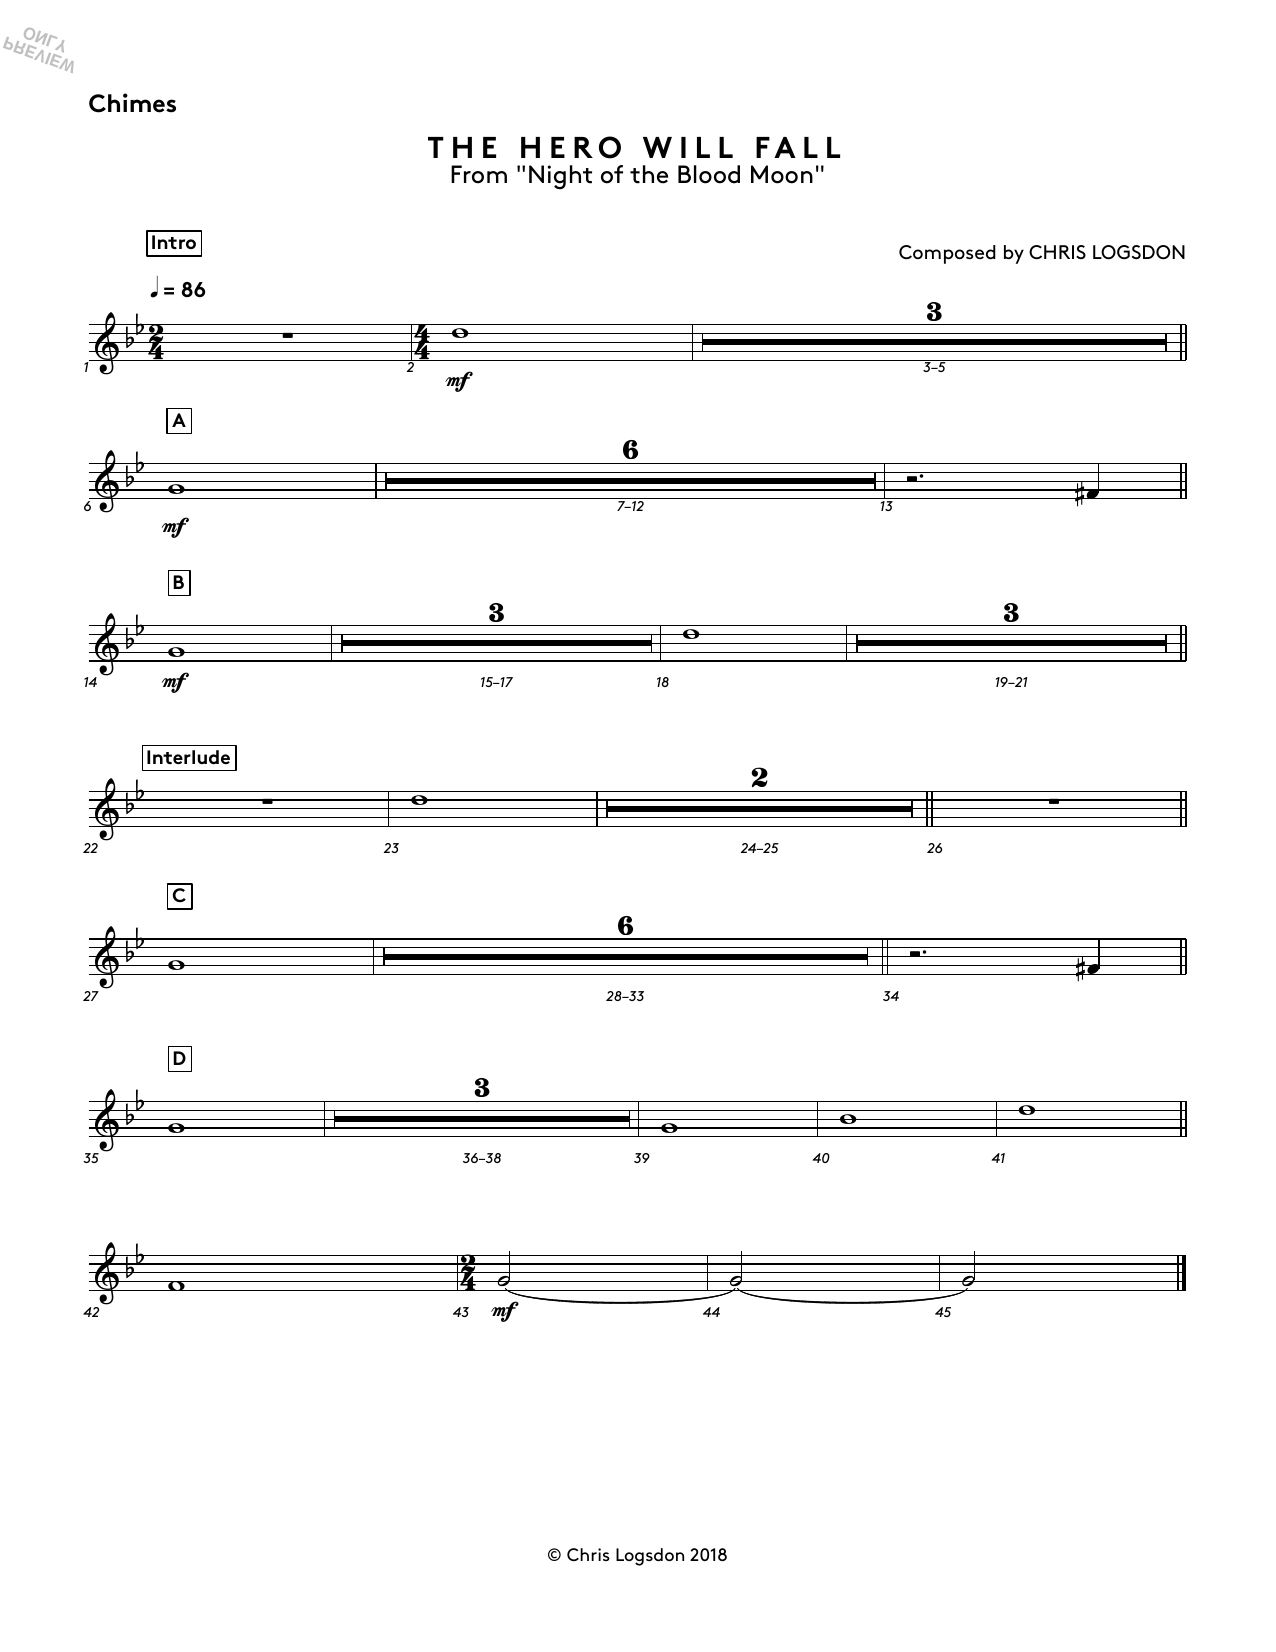 The Hero Will Fall (from Night of the Blood Moon) - Chimes Sheet Music